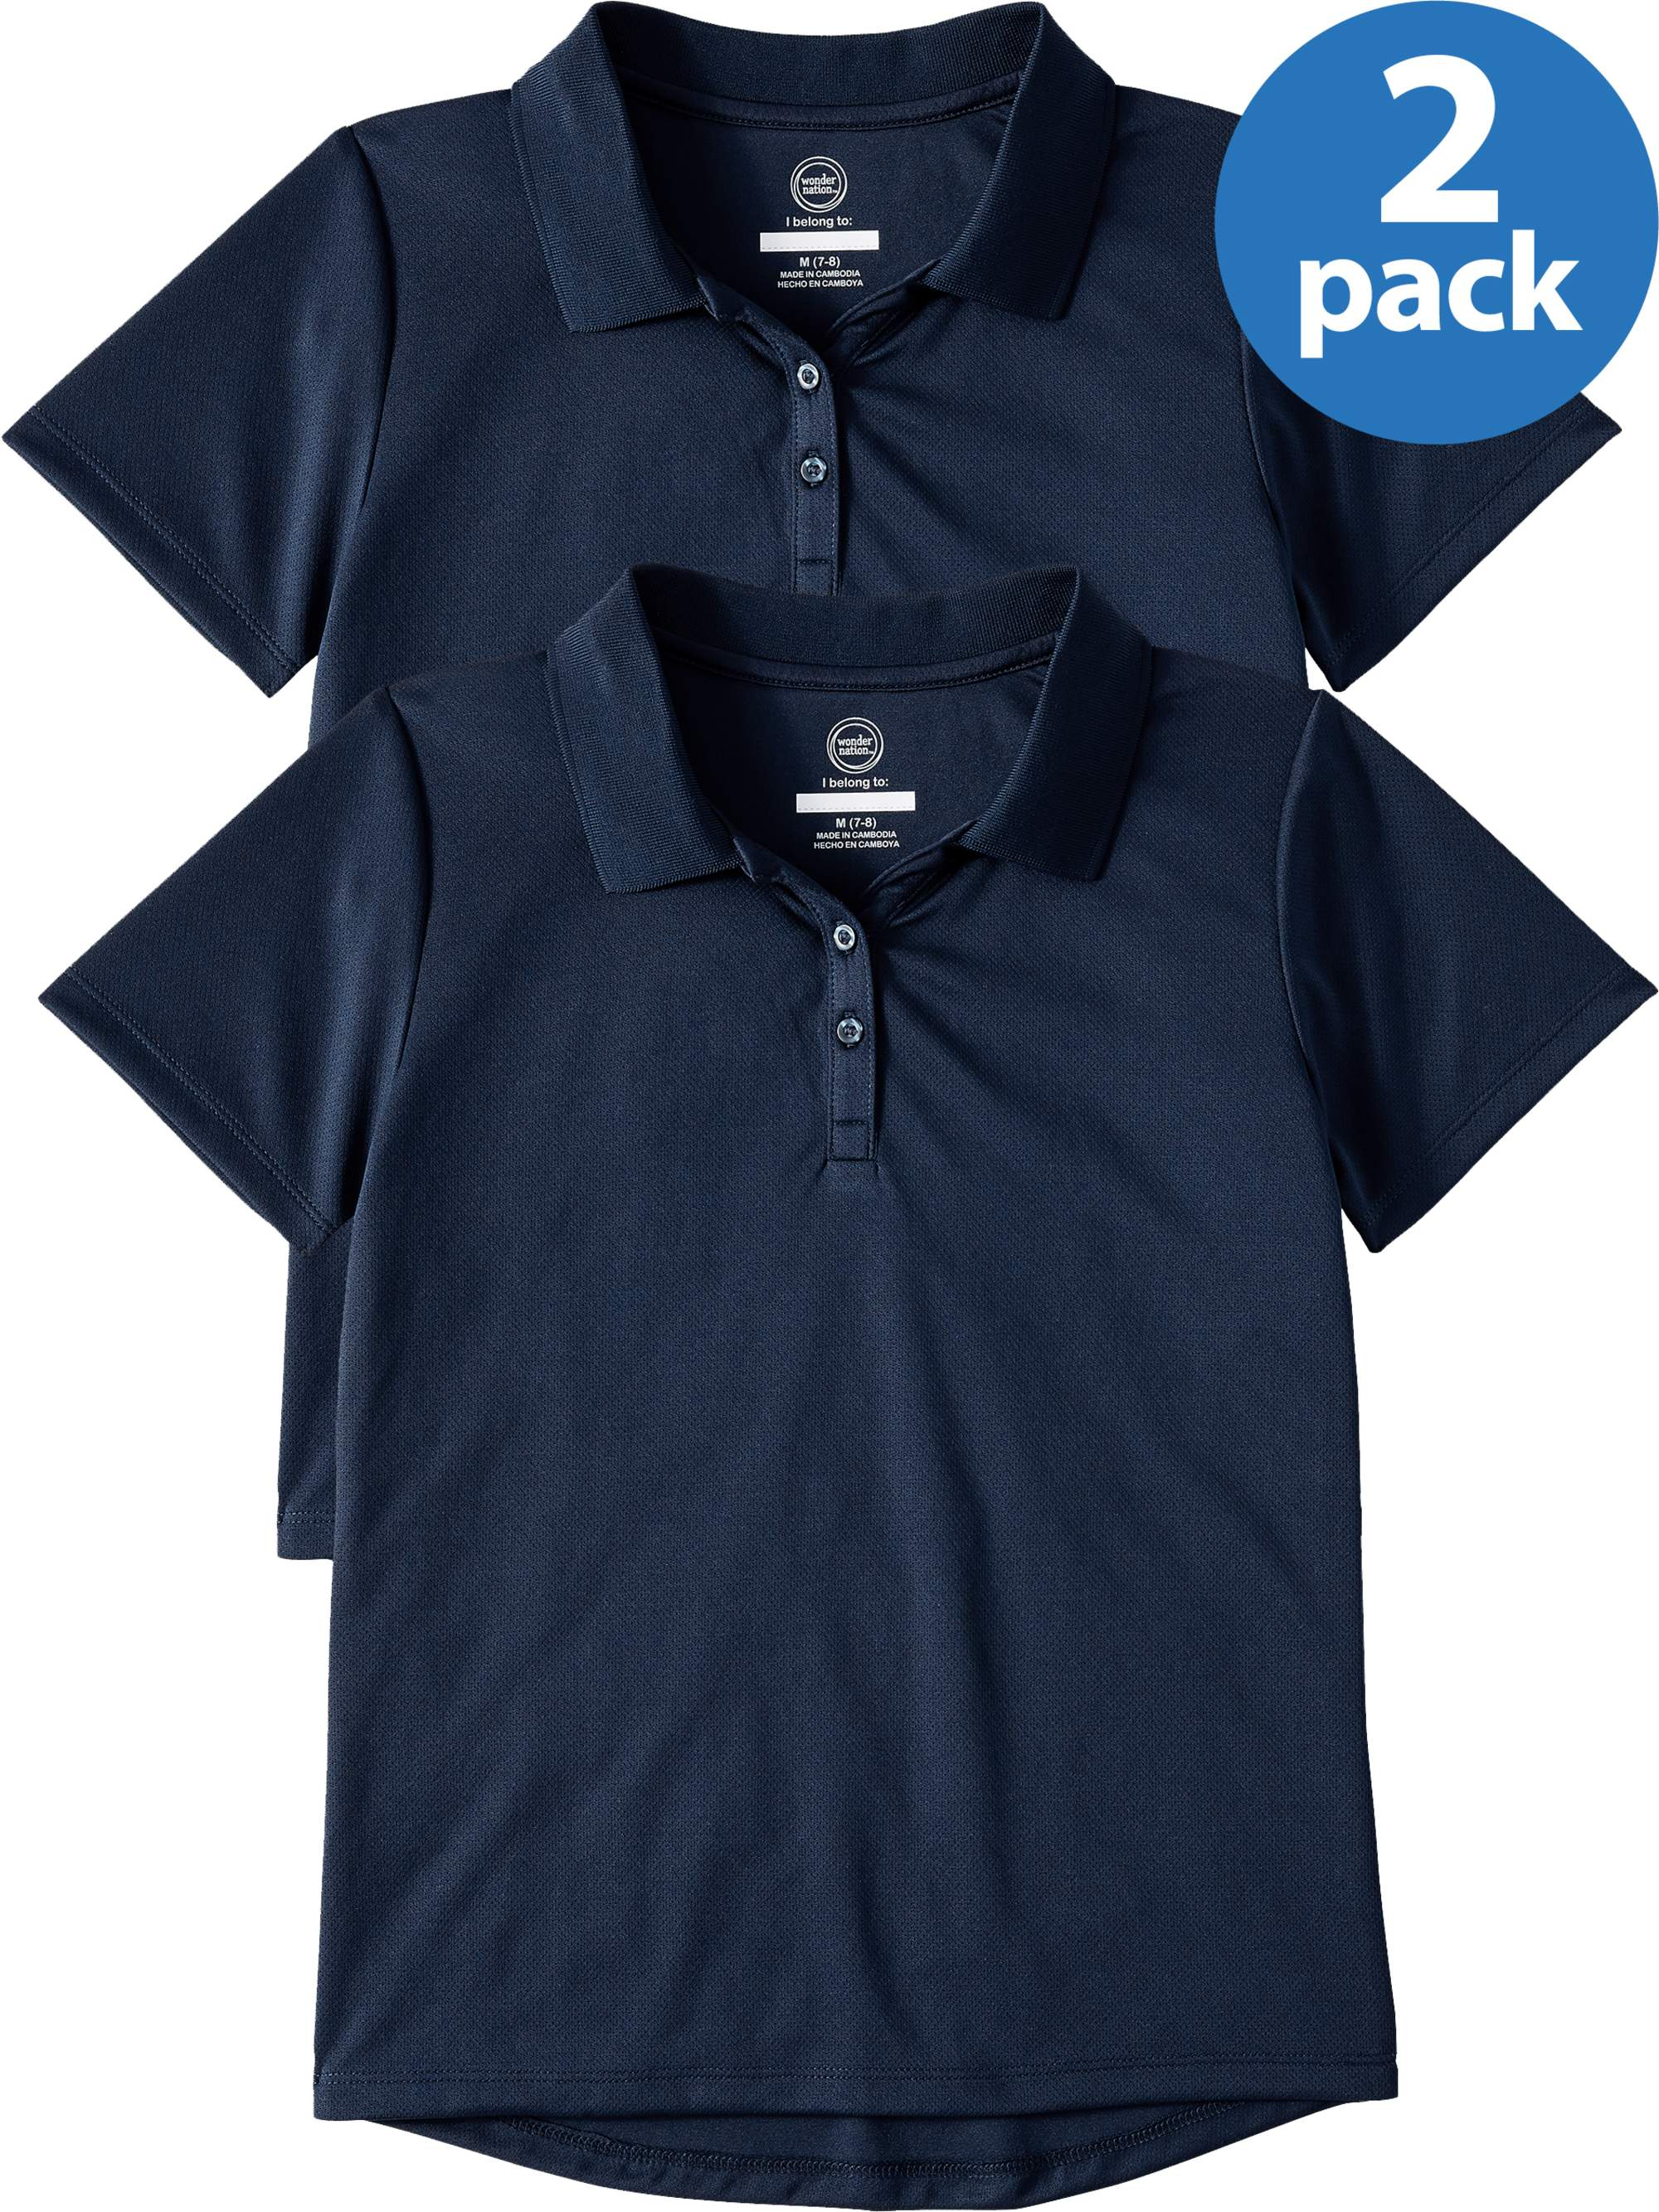 Girls 2 pack Back to Scool Blue Polo Shirts